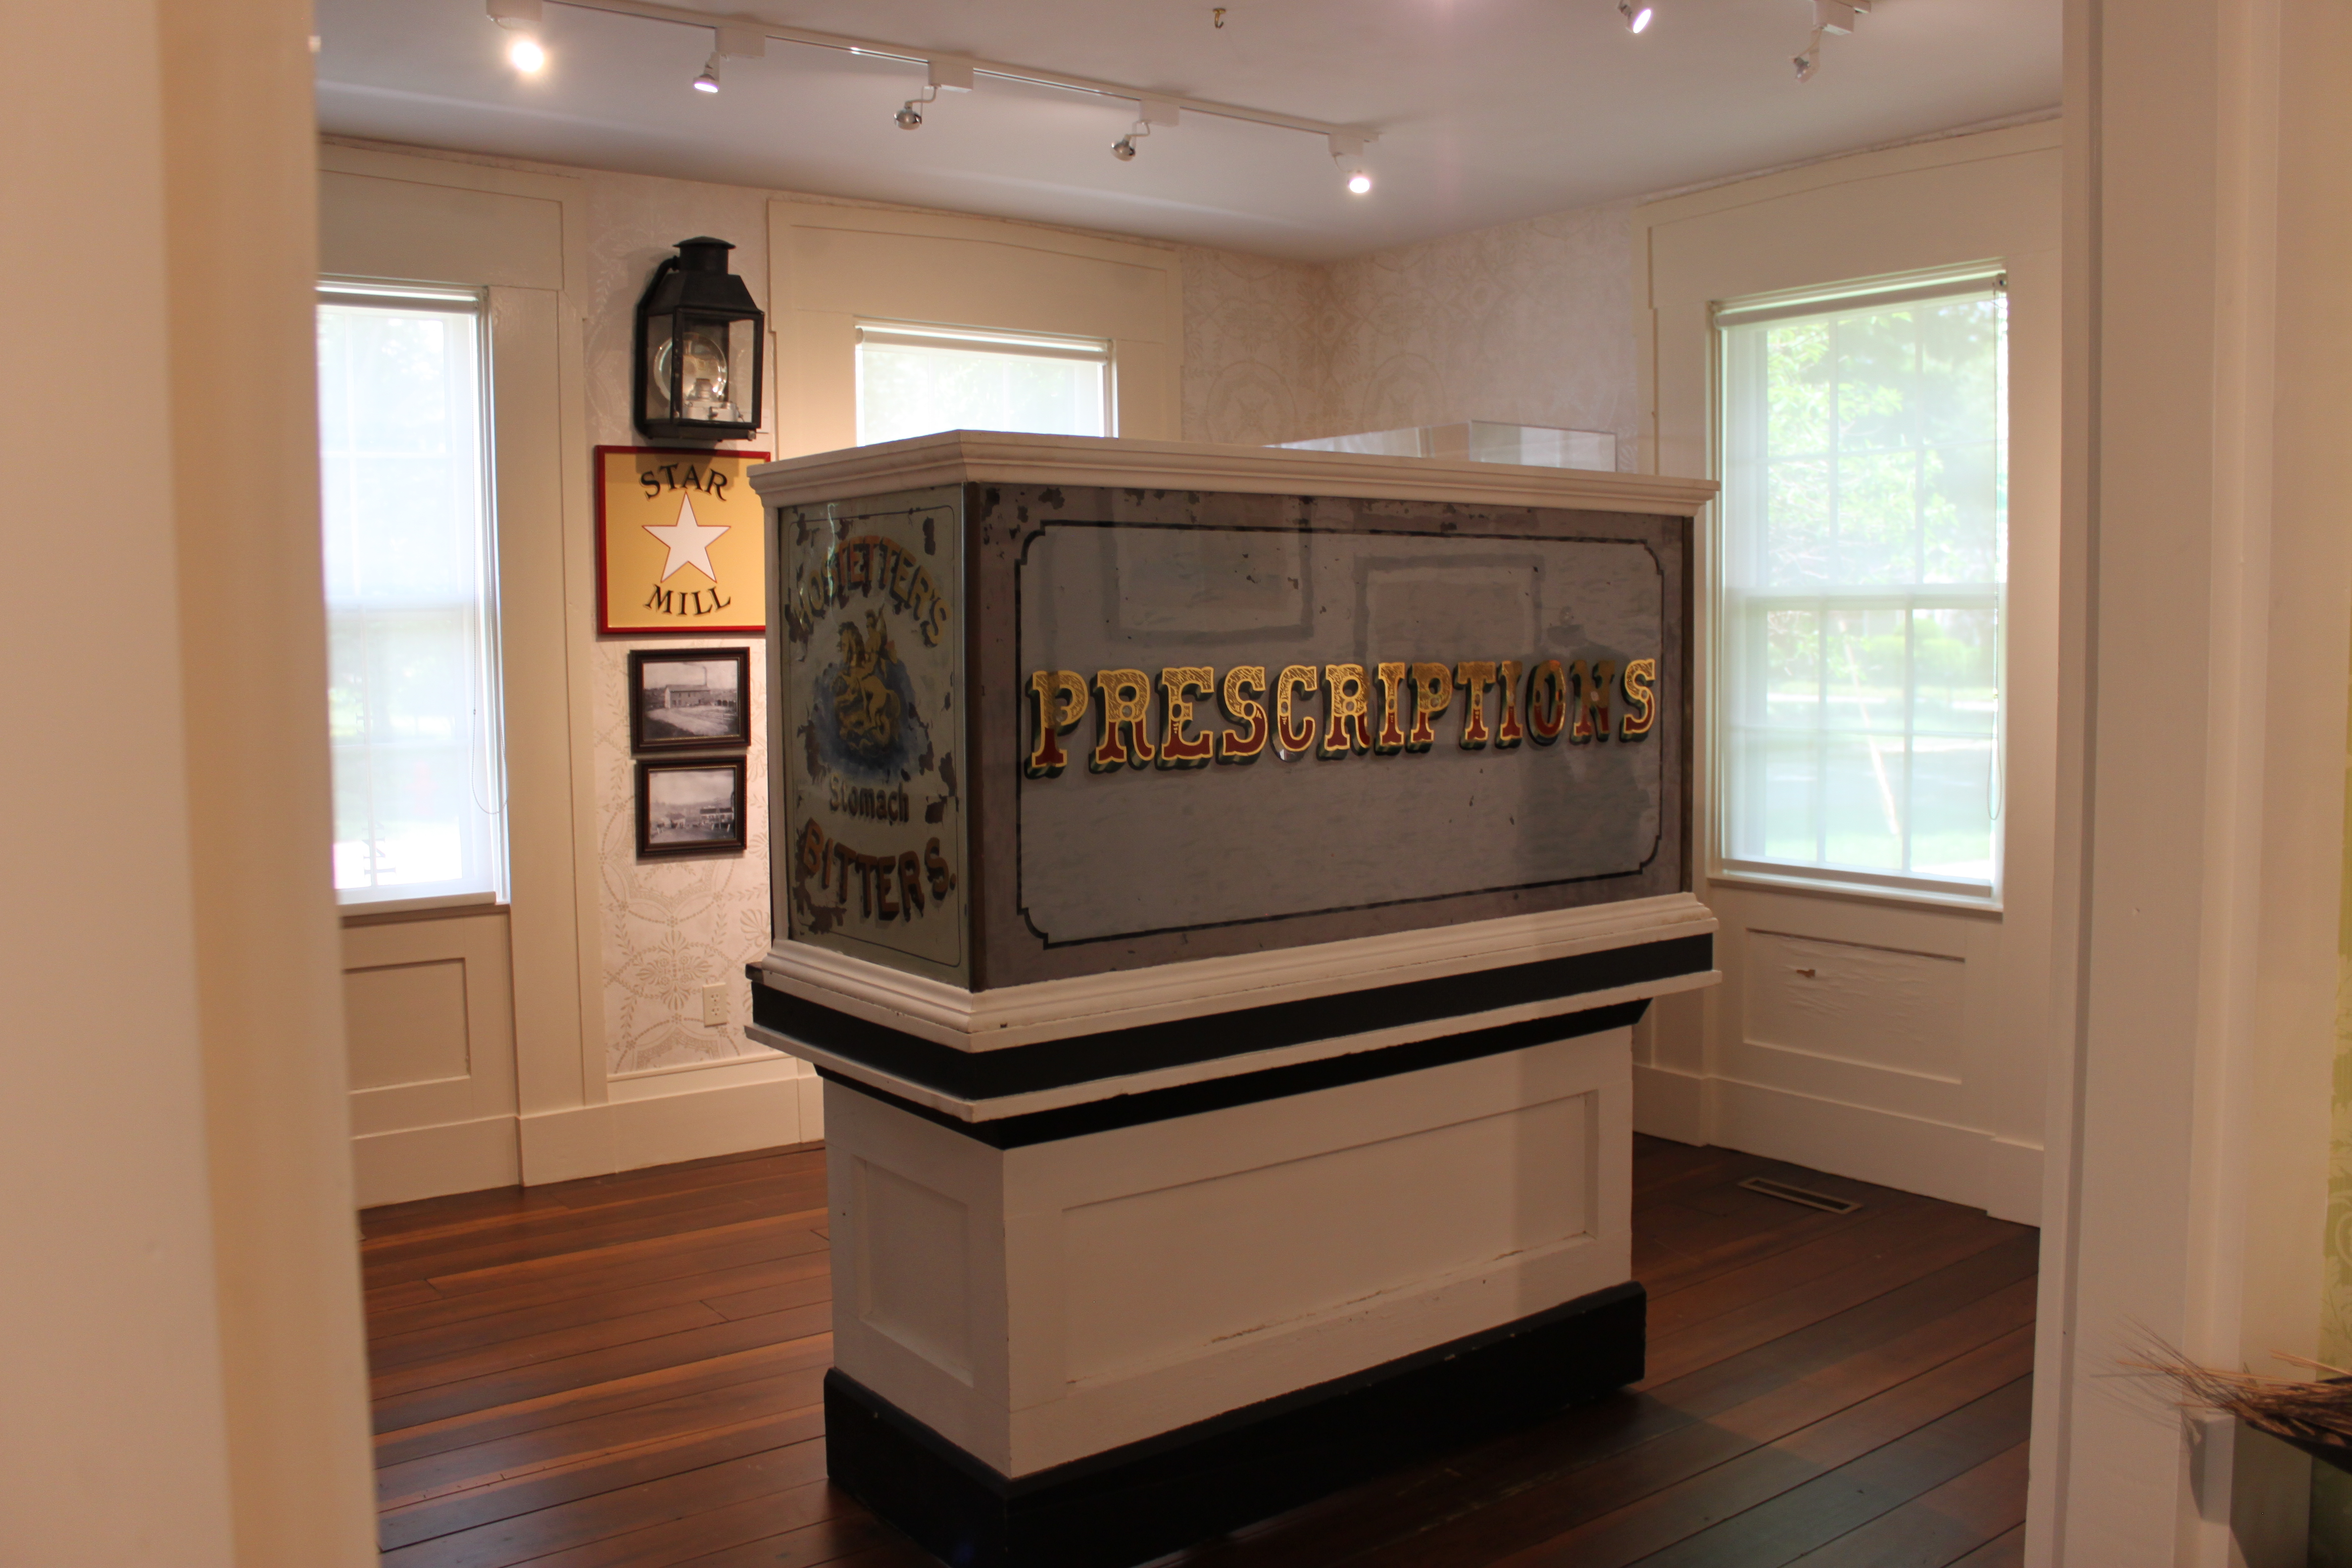 This pharmacy counter was brought to Milan from New York on a sailboat on the Great Lakes and then by canal boat on the Milan Canal.